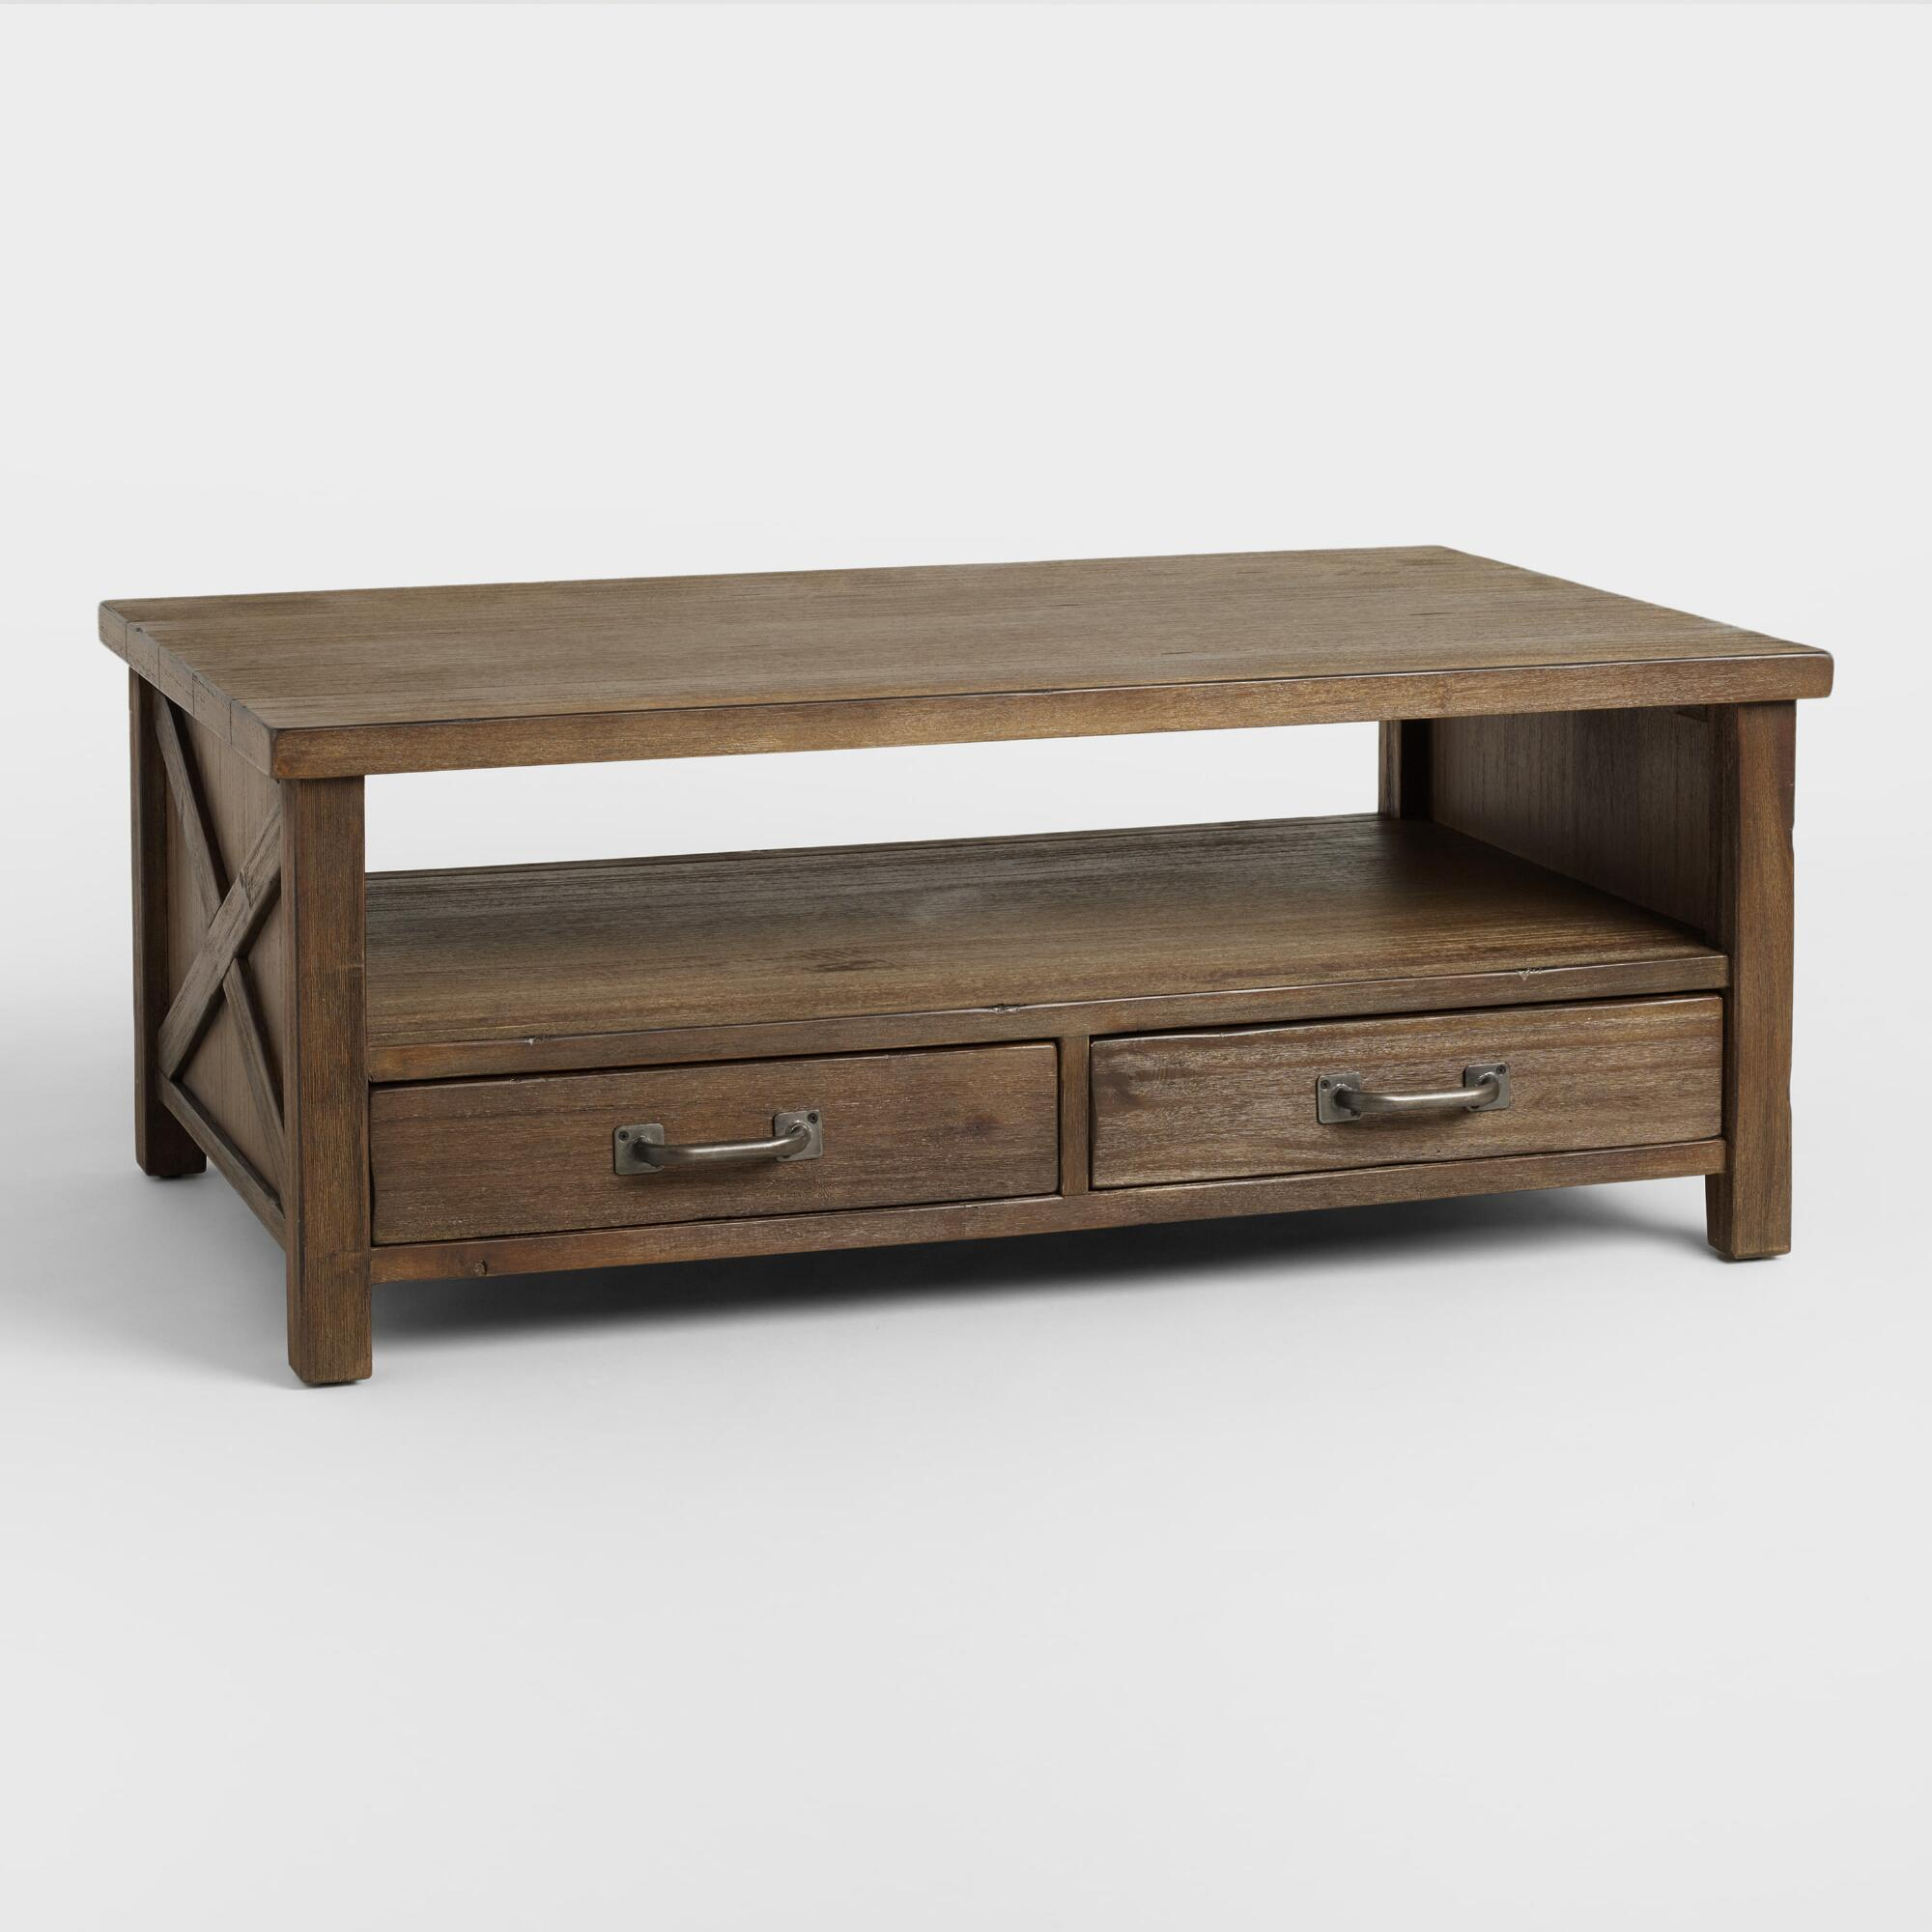 Coffee tables affordable end tables world market wood farmhouse coffee table geotapseo Gallery